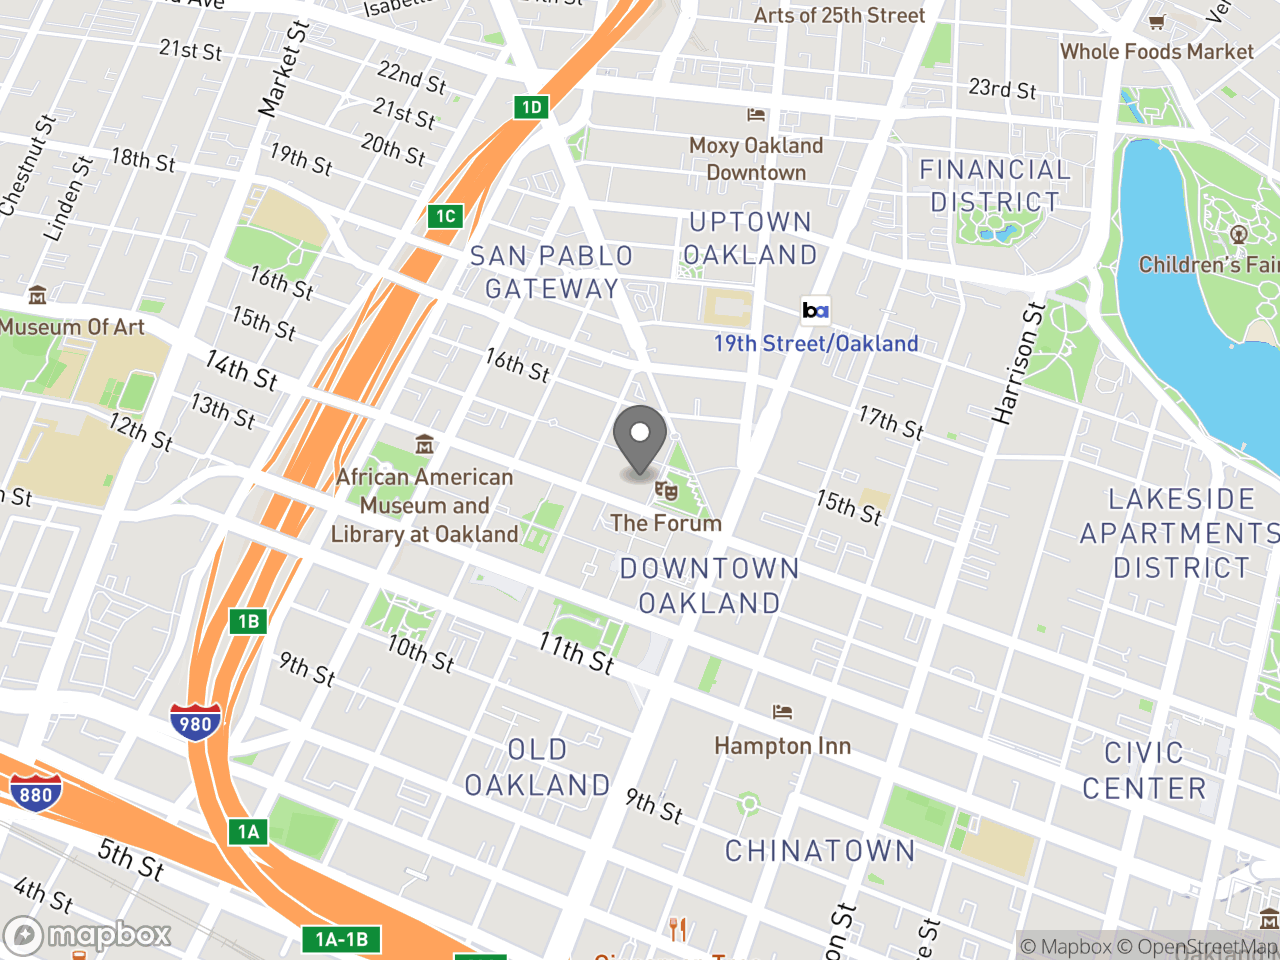 Map image for Rent Board Regular Meeting August 30, 2018, located at 1 Frank H Ogawa Plaza in Oakland, CA 94612